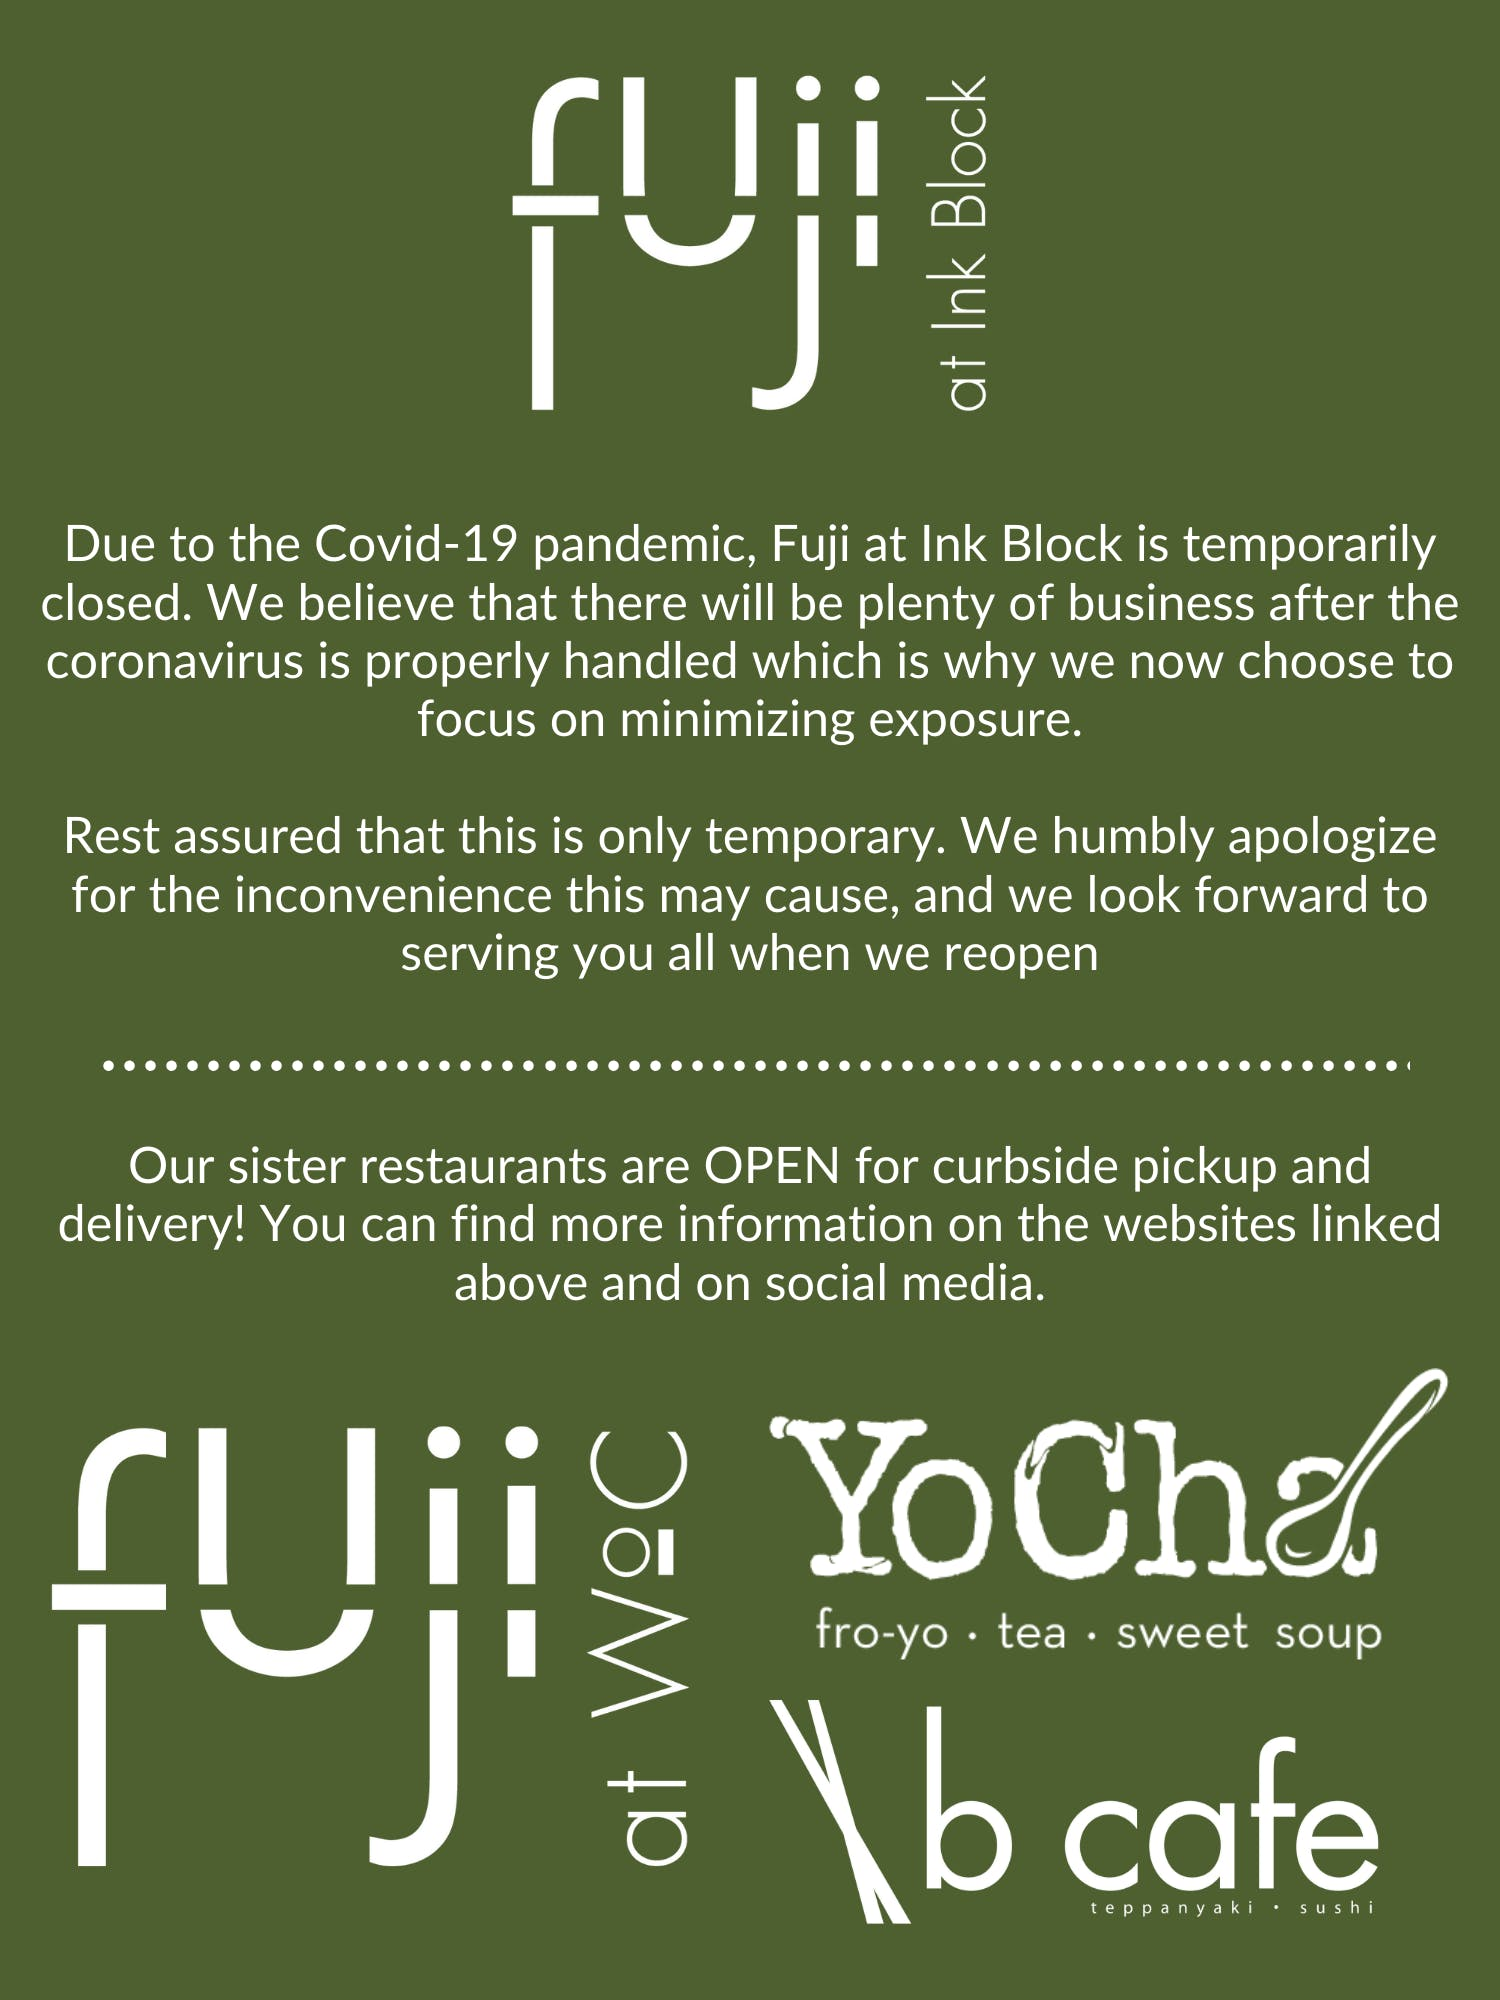 Fuji at Ink Block is currently closed due to the Covid-19 pandemic. Please check out our sister restaurants Fuji at WoC, B Cafe, and YoCha!